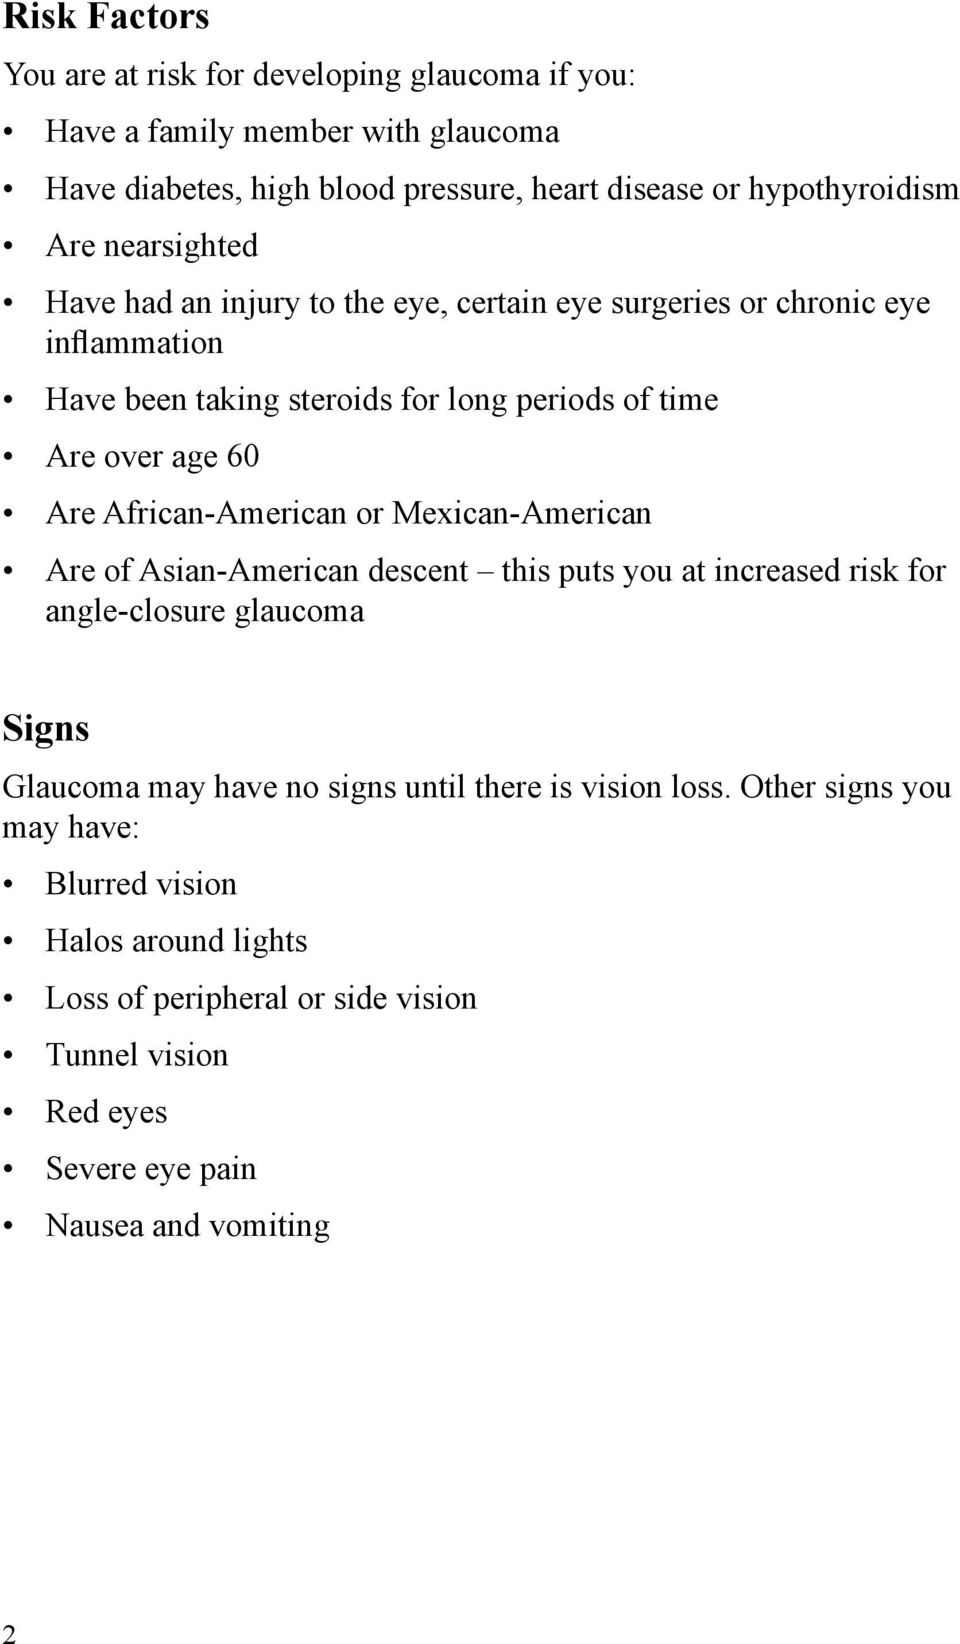 African-American or Mexican-American Are of Asian-American descent this puts you at increased risk for angle-closure glaucoma Signs Glaucoma may have no signs until